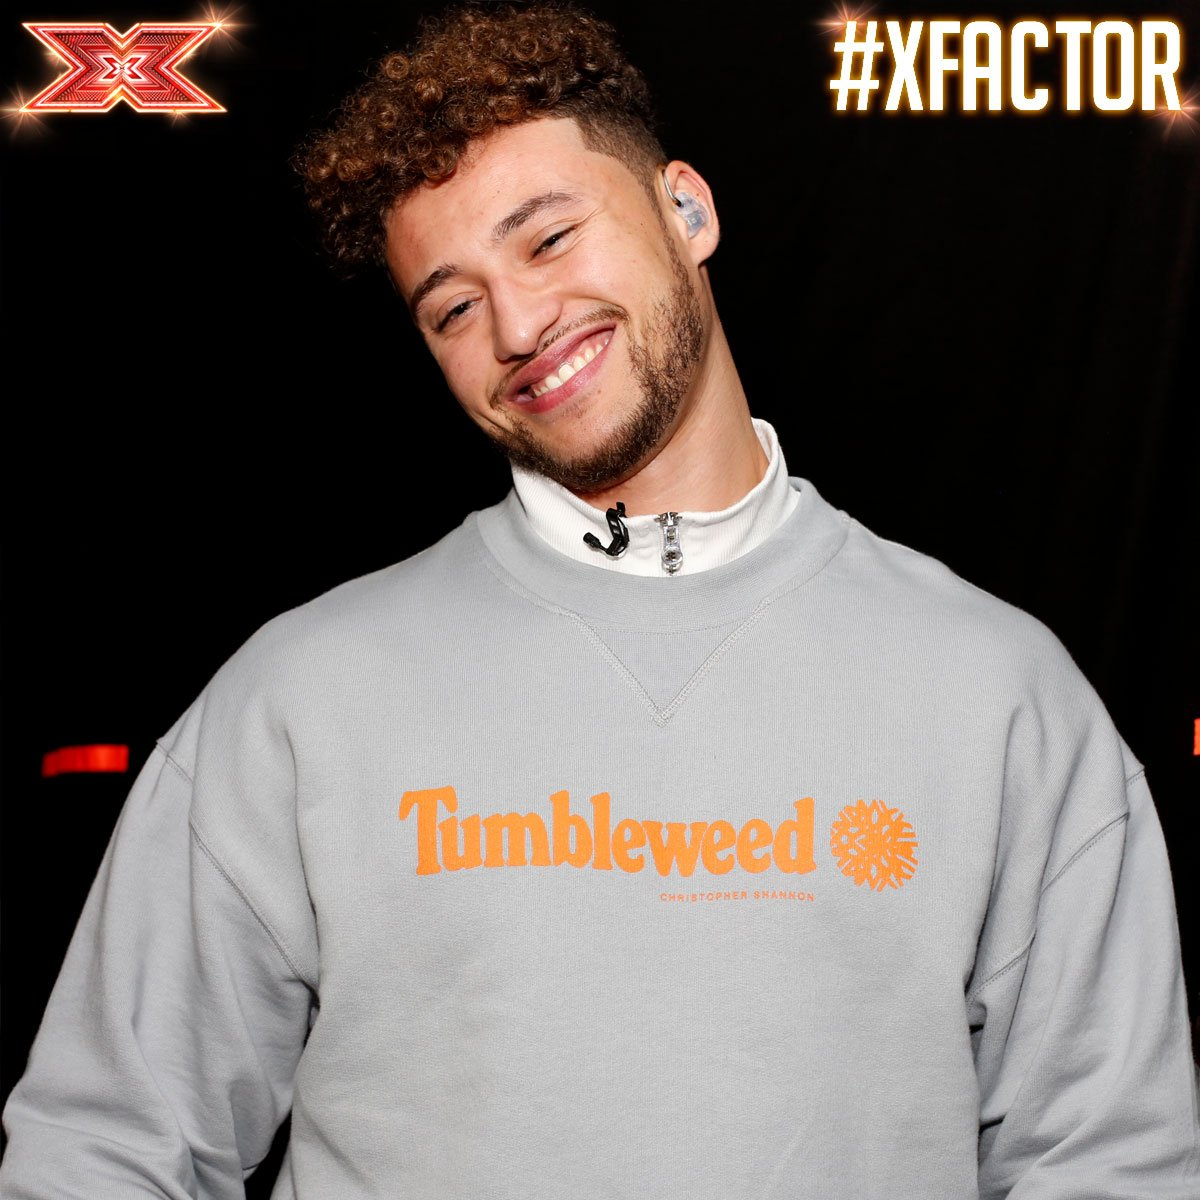 Name a better #TuesdayTreat this lunchtime than @MylesRakSu?! 😁😁😁 #SmileyMyles #XFactor https://t.co/8I5IgYWCMk